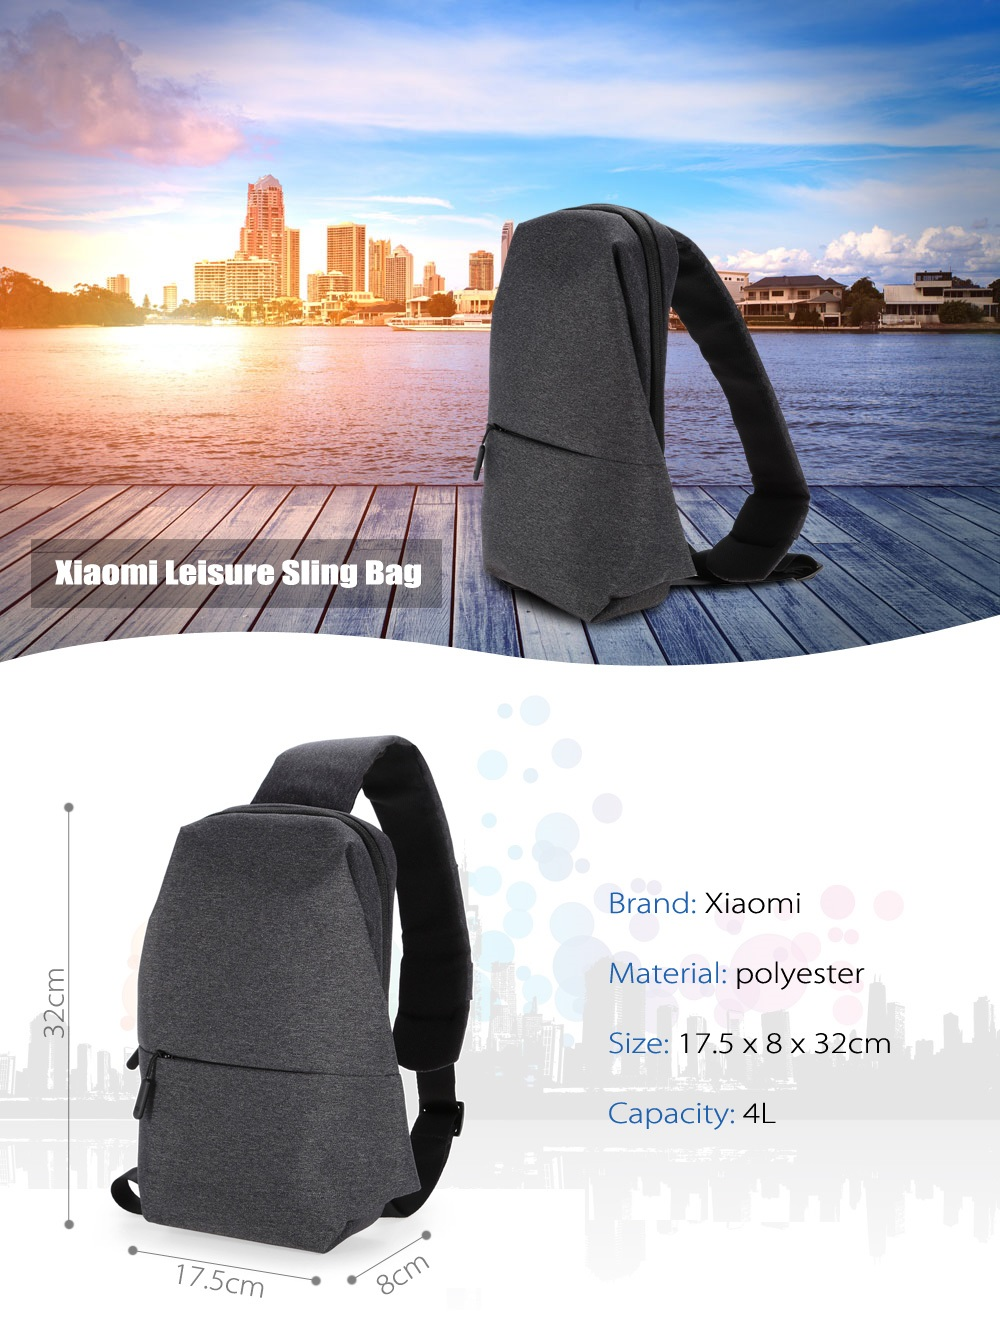 Original Xiaomi 4L Polyester Sling Bag for Leisure Sports- Light Gray